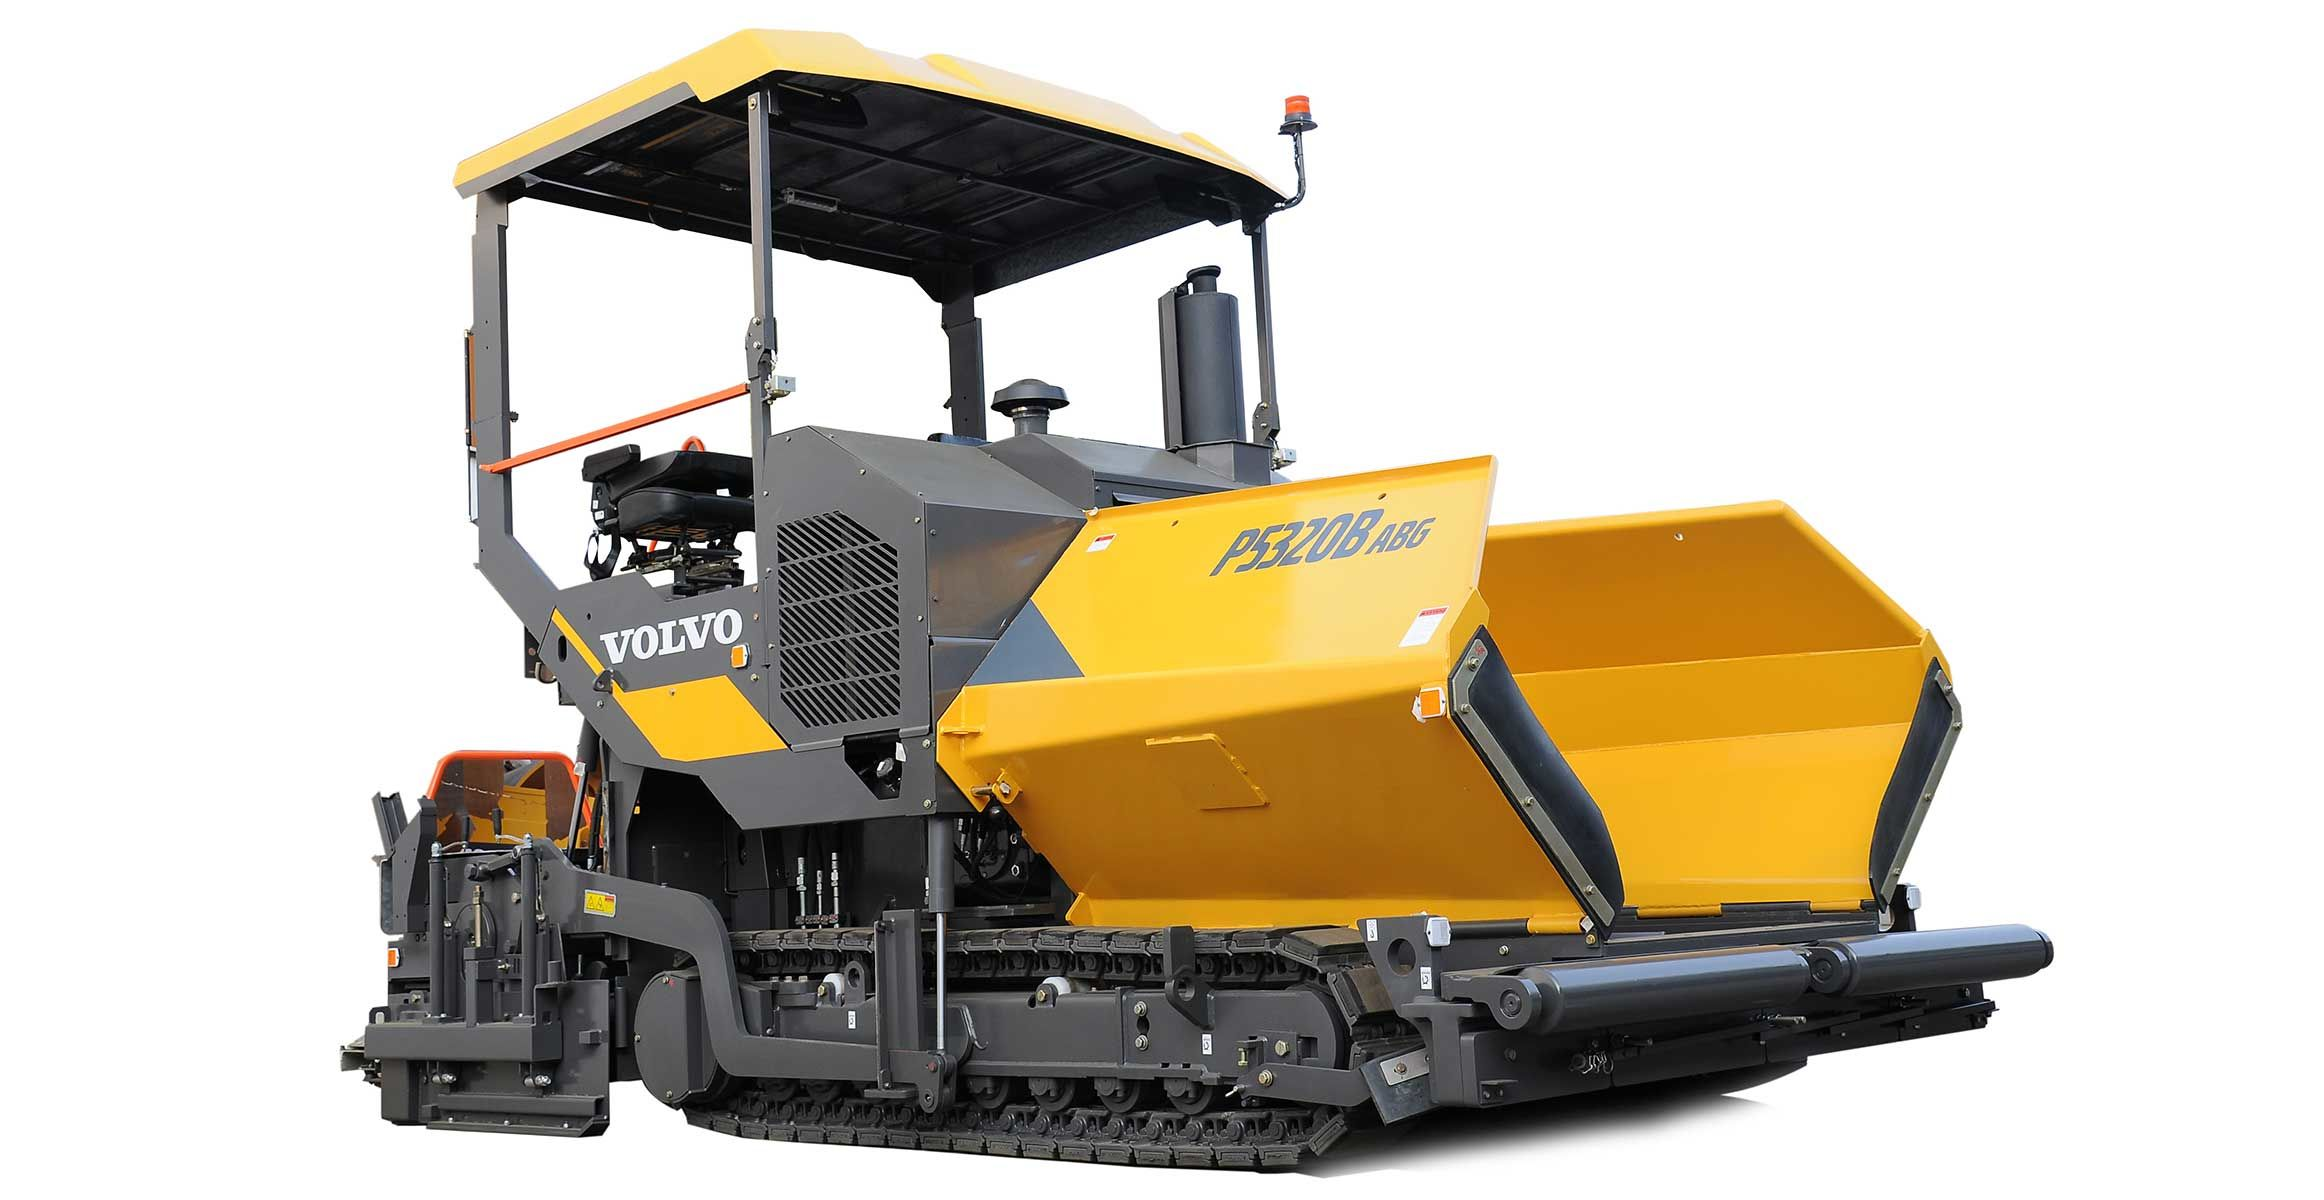 New P5320B ABG paver from Volvo CE makes its first show ...